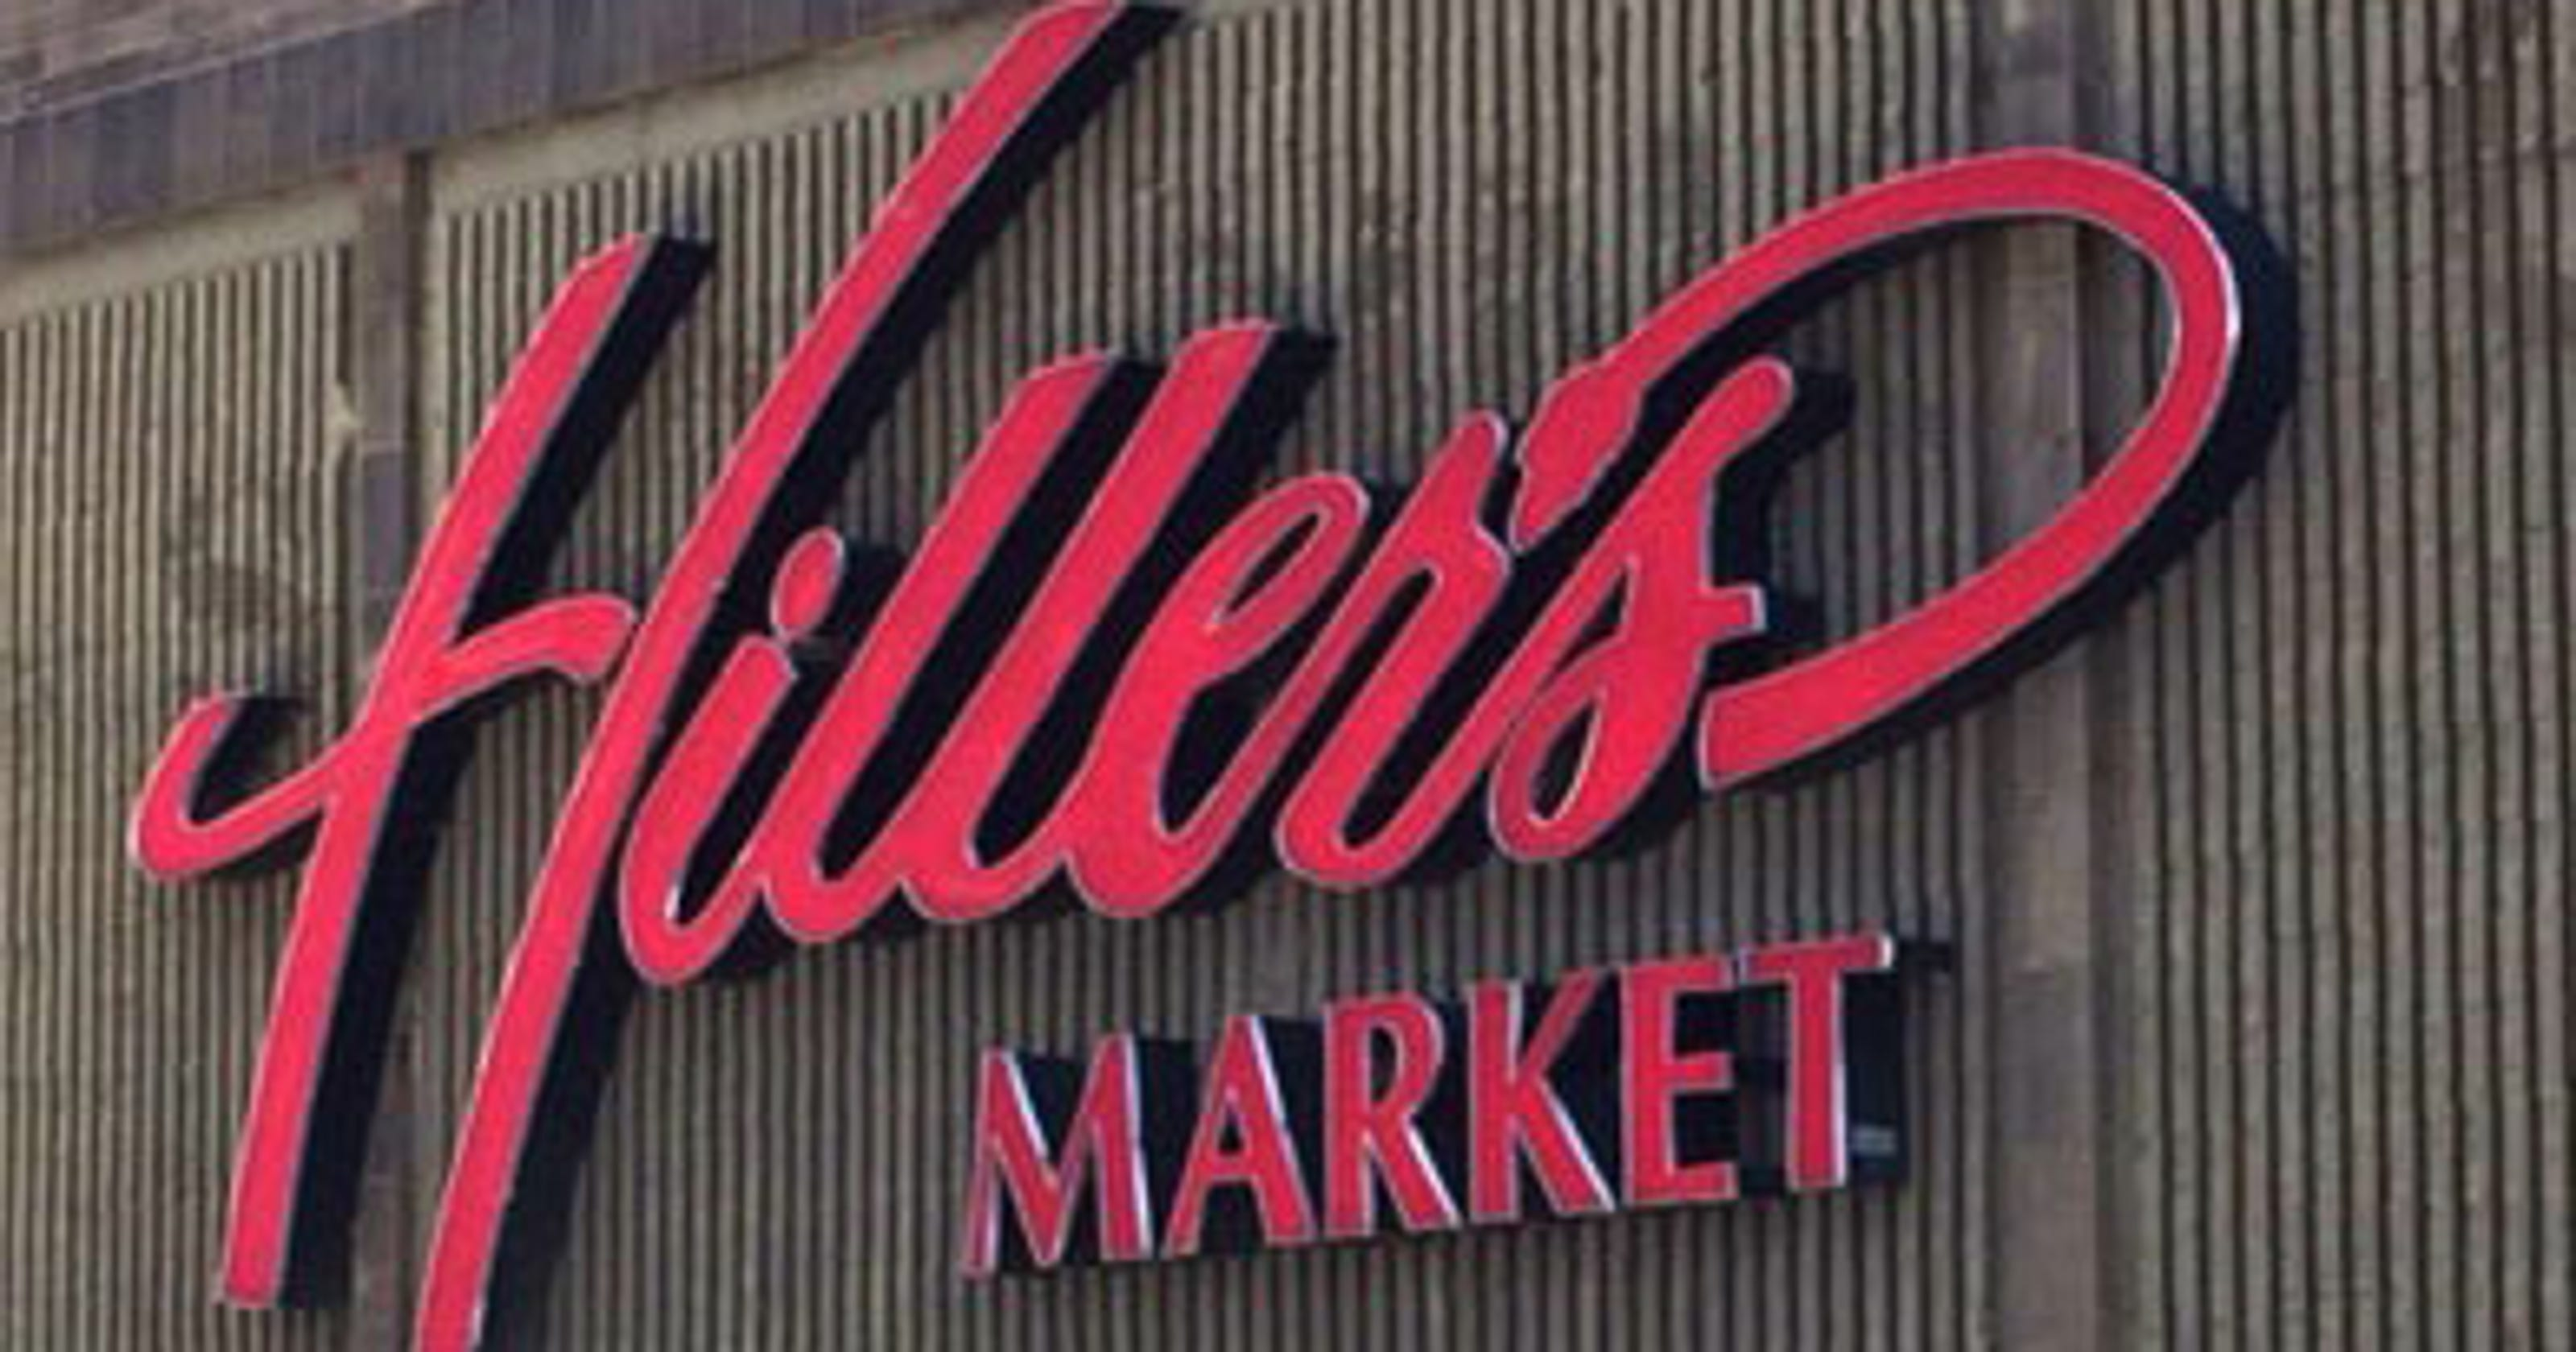 Hiller's Markets workers must reapply for jobs at Kroger